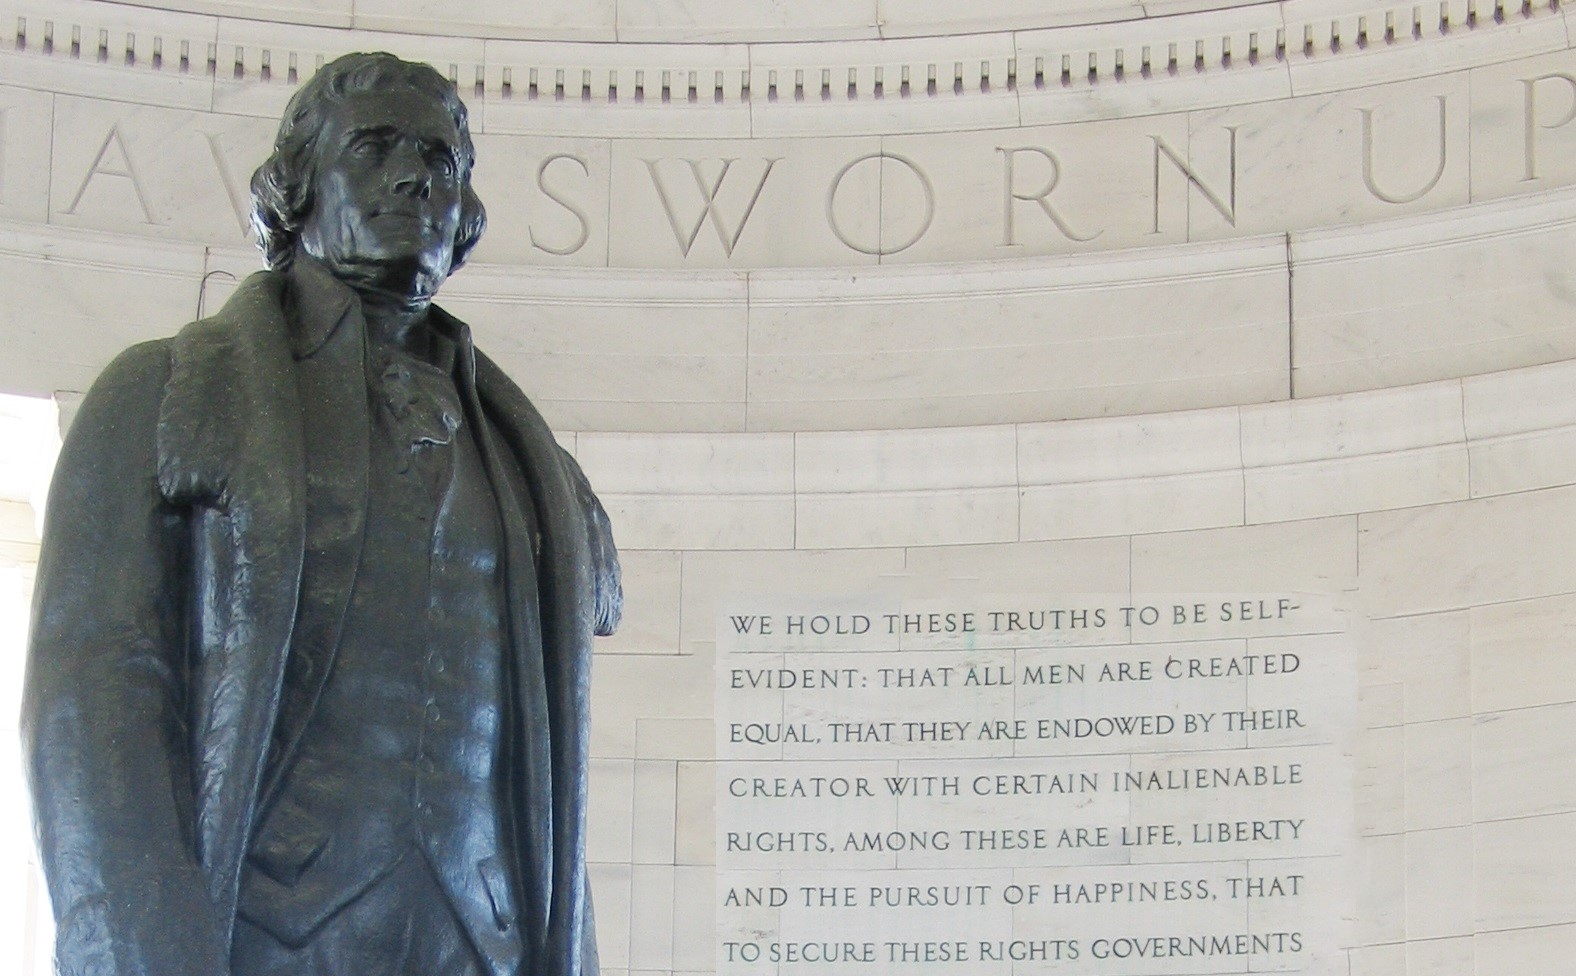 A sculpture of Thomas Jefferson next to the engraved words of the preamble of the Declaration of Independence at the Jefferson Memorial.